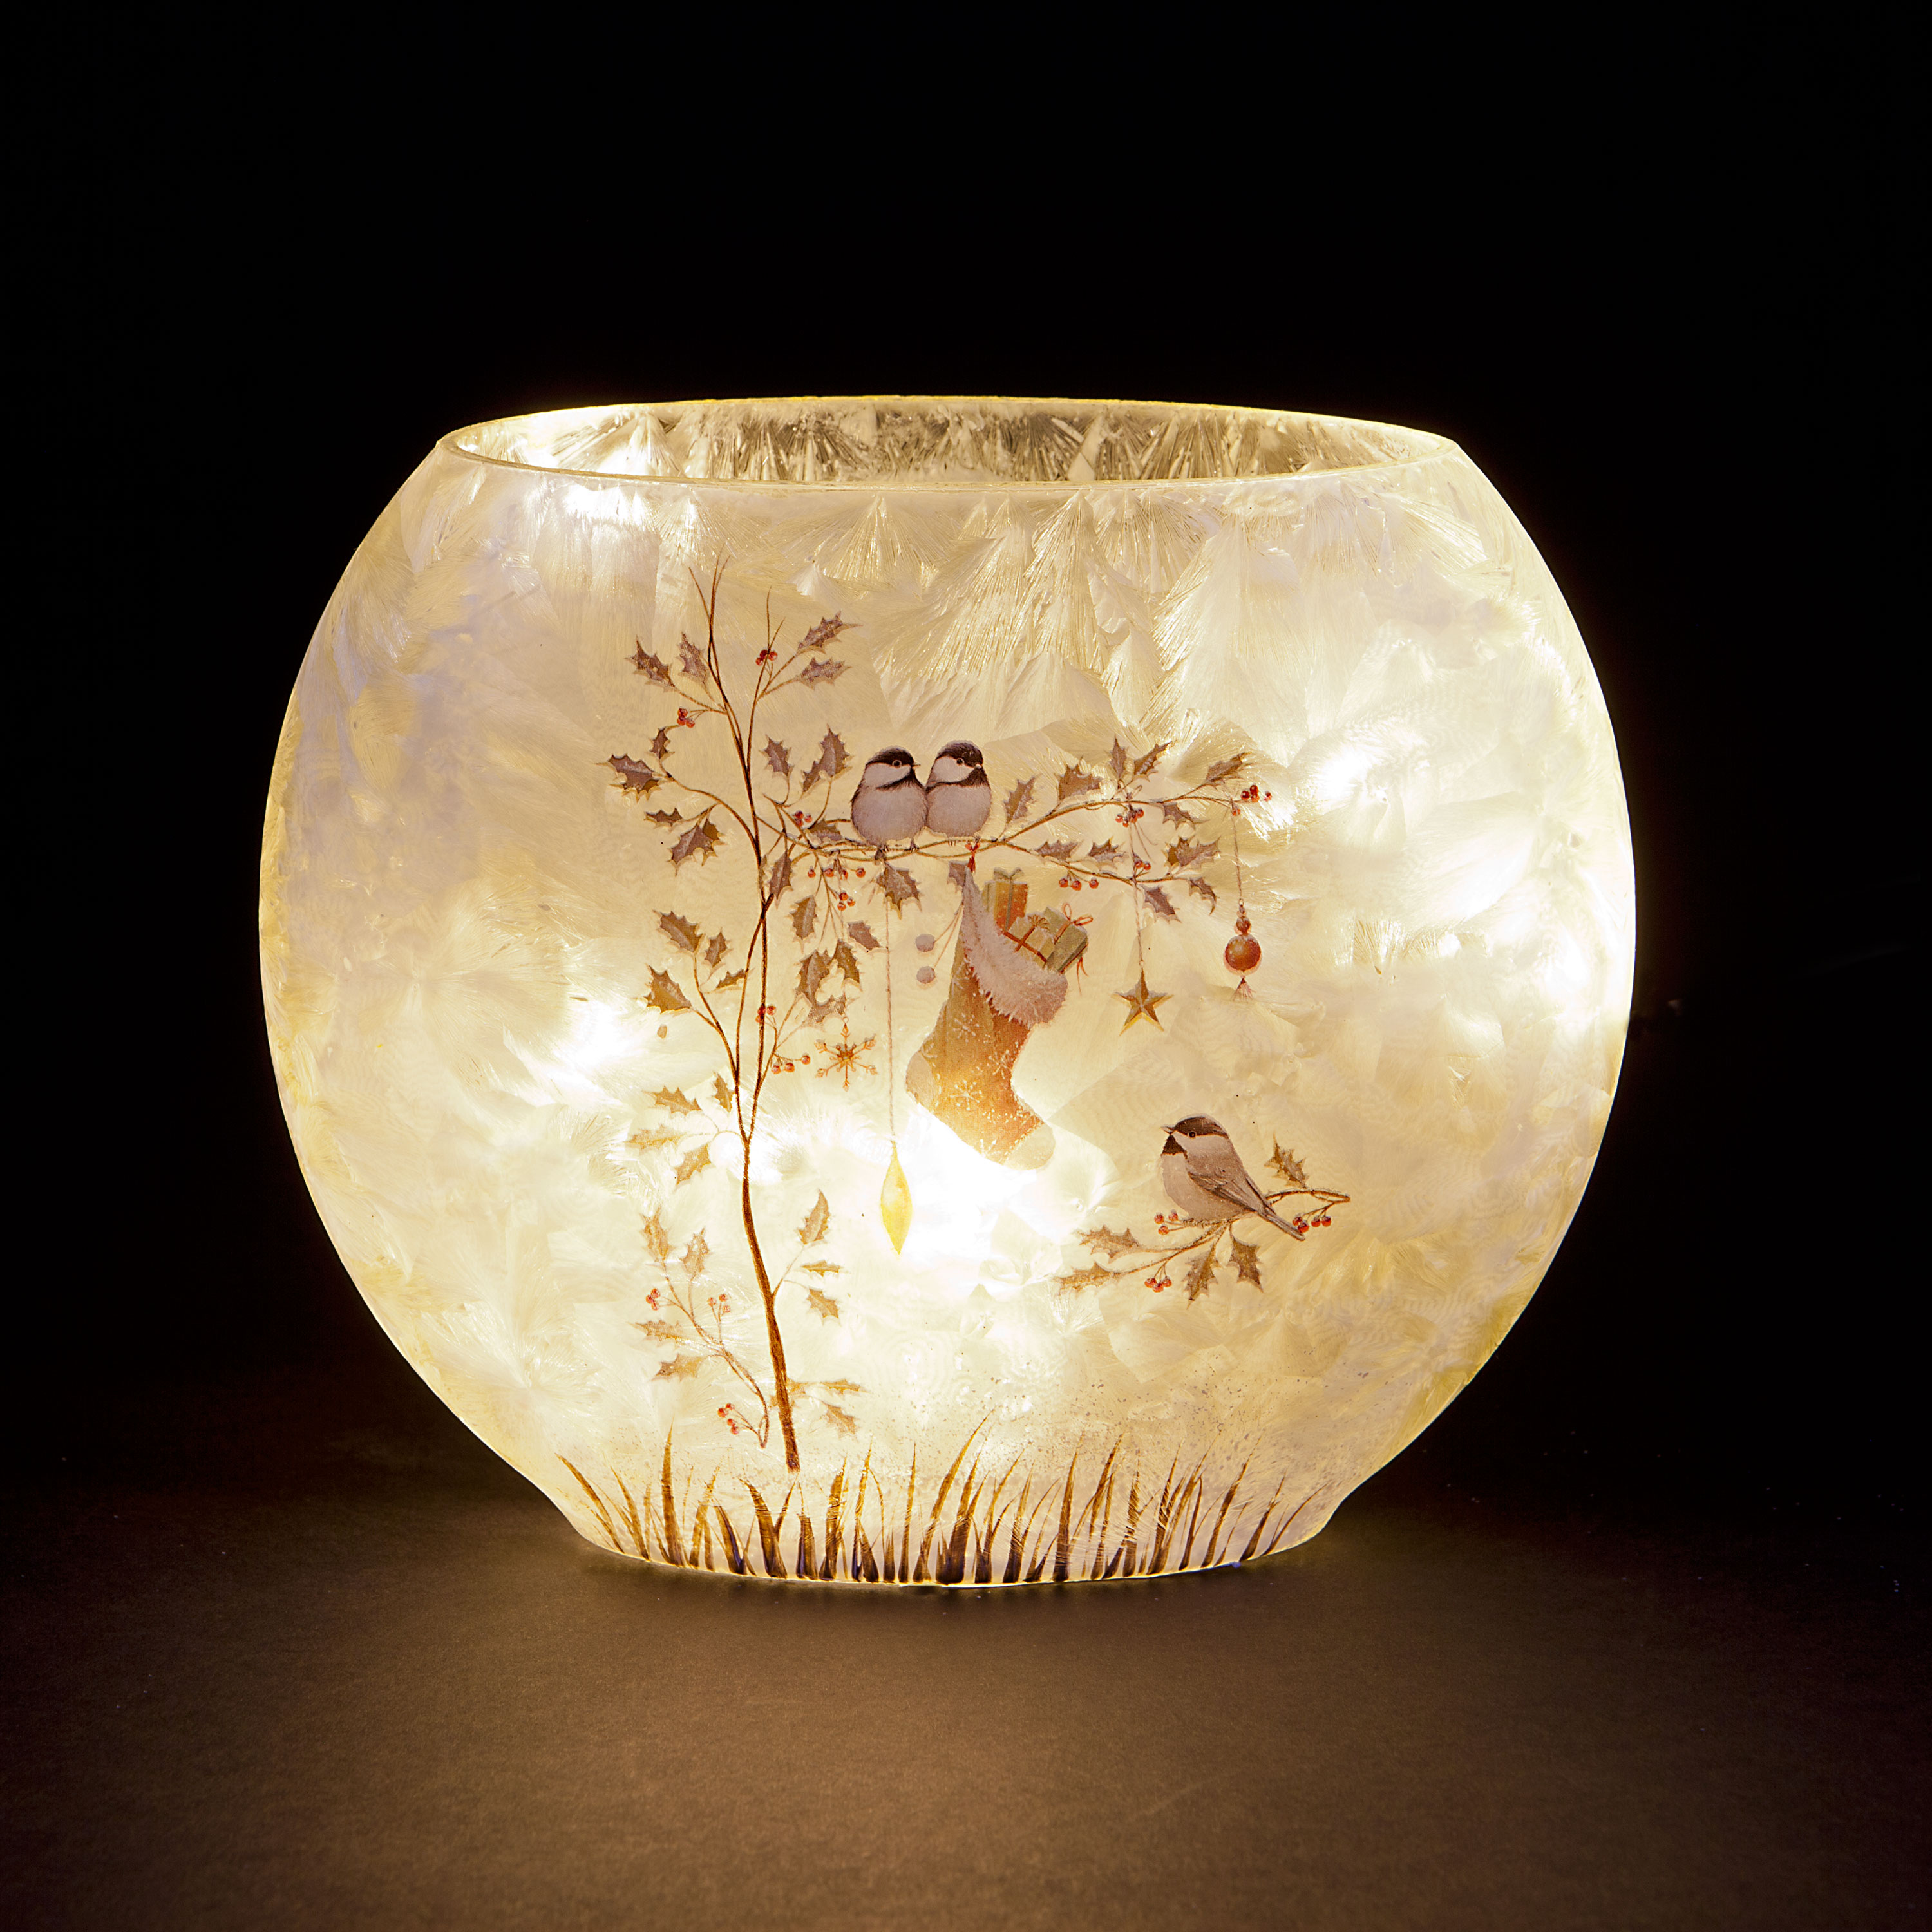 Illuminated Glass Bowl Vase with Christmas Gifts Design Holly Bird Stocking Presents